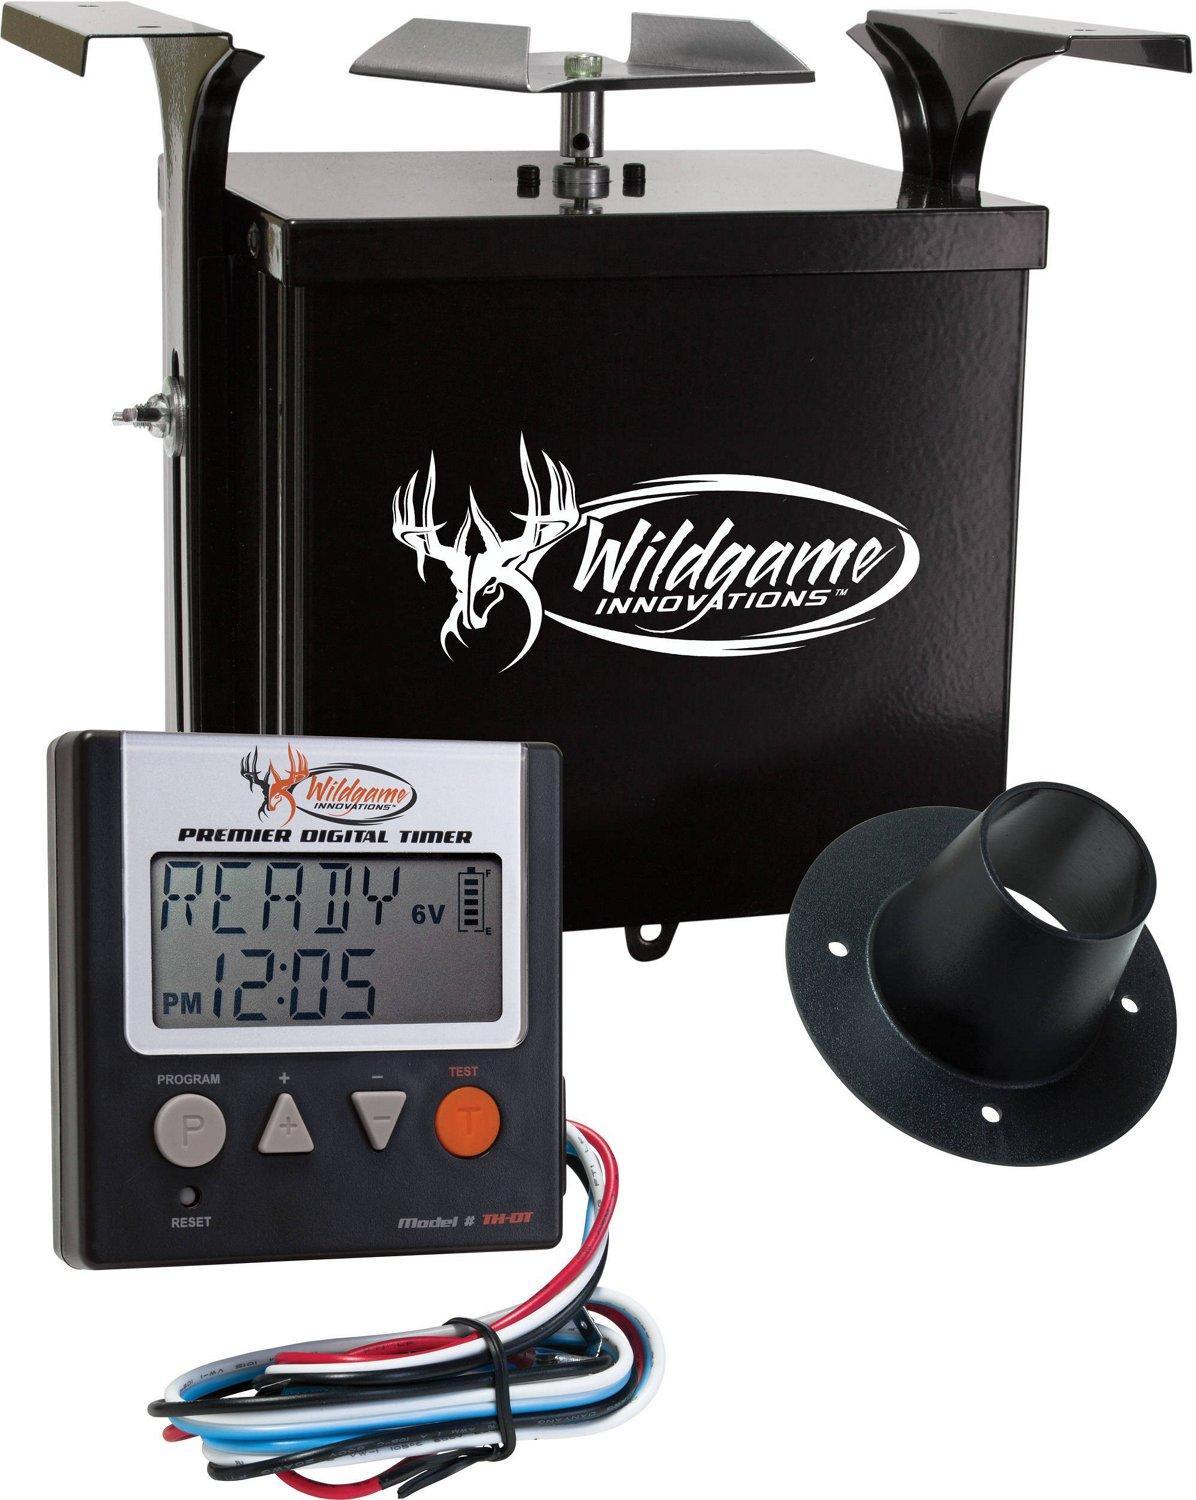 Feeder Accessories Deer Kits Academy Tan America Timer Wiring Diagram Display Product Reviews For Wildgame Innovations Digital Power Control Unit